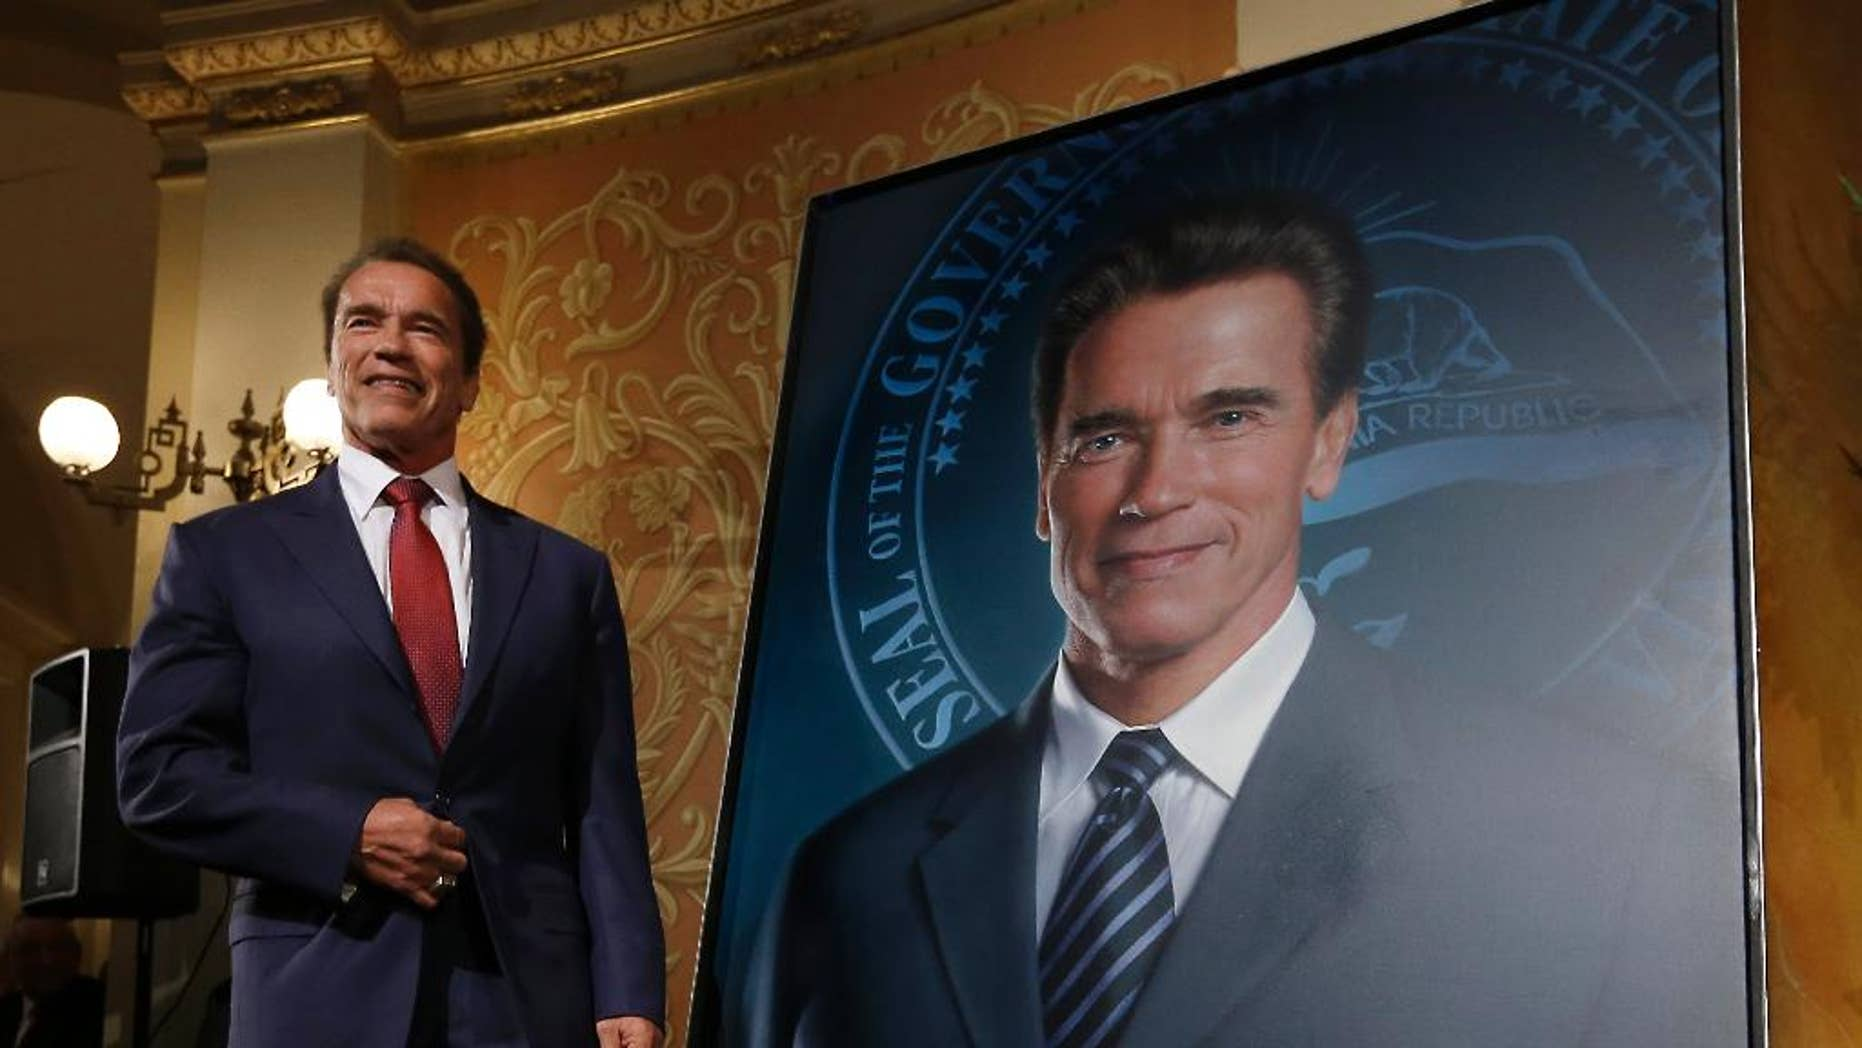 Former Gov. Arnold Schwarzenegger poses with his official portrait after it was unveiled at the Capitol in Sacramento, Calif., Monday, Sept. 8, 2014.  The photograph-like giant image of the former governor was done by Austrian artist Gottfried Helnwein and will hang on the third floor of the Capitol. (AP Photo/Rich Pedroncelli)